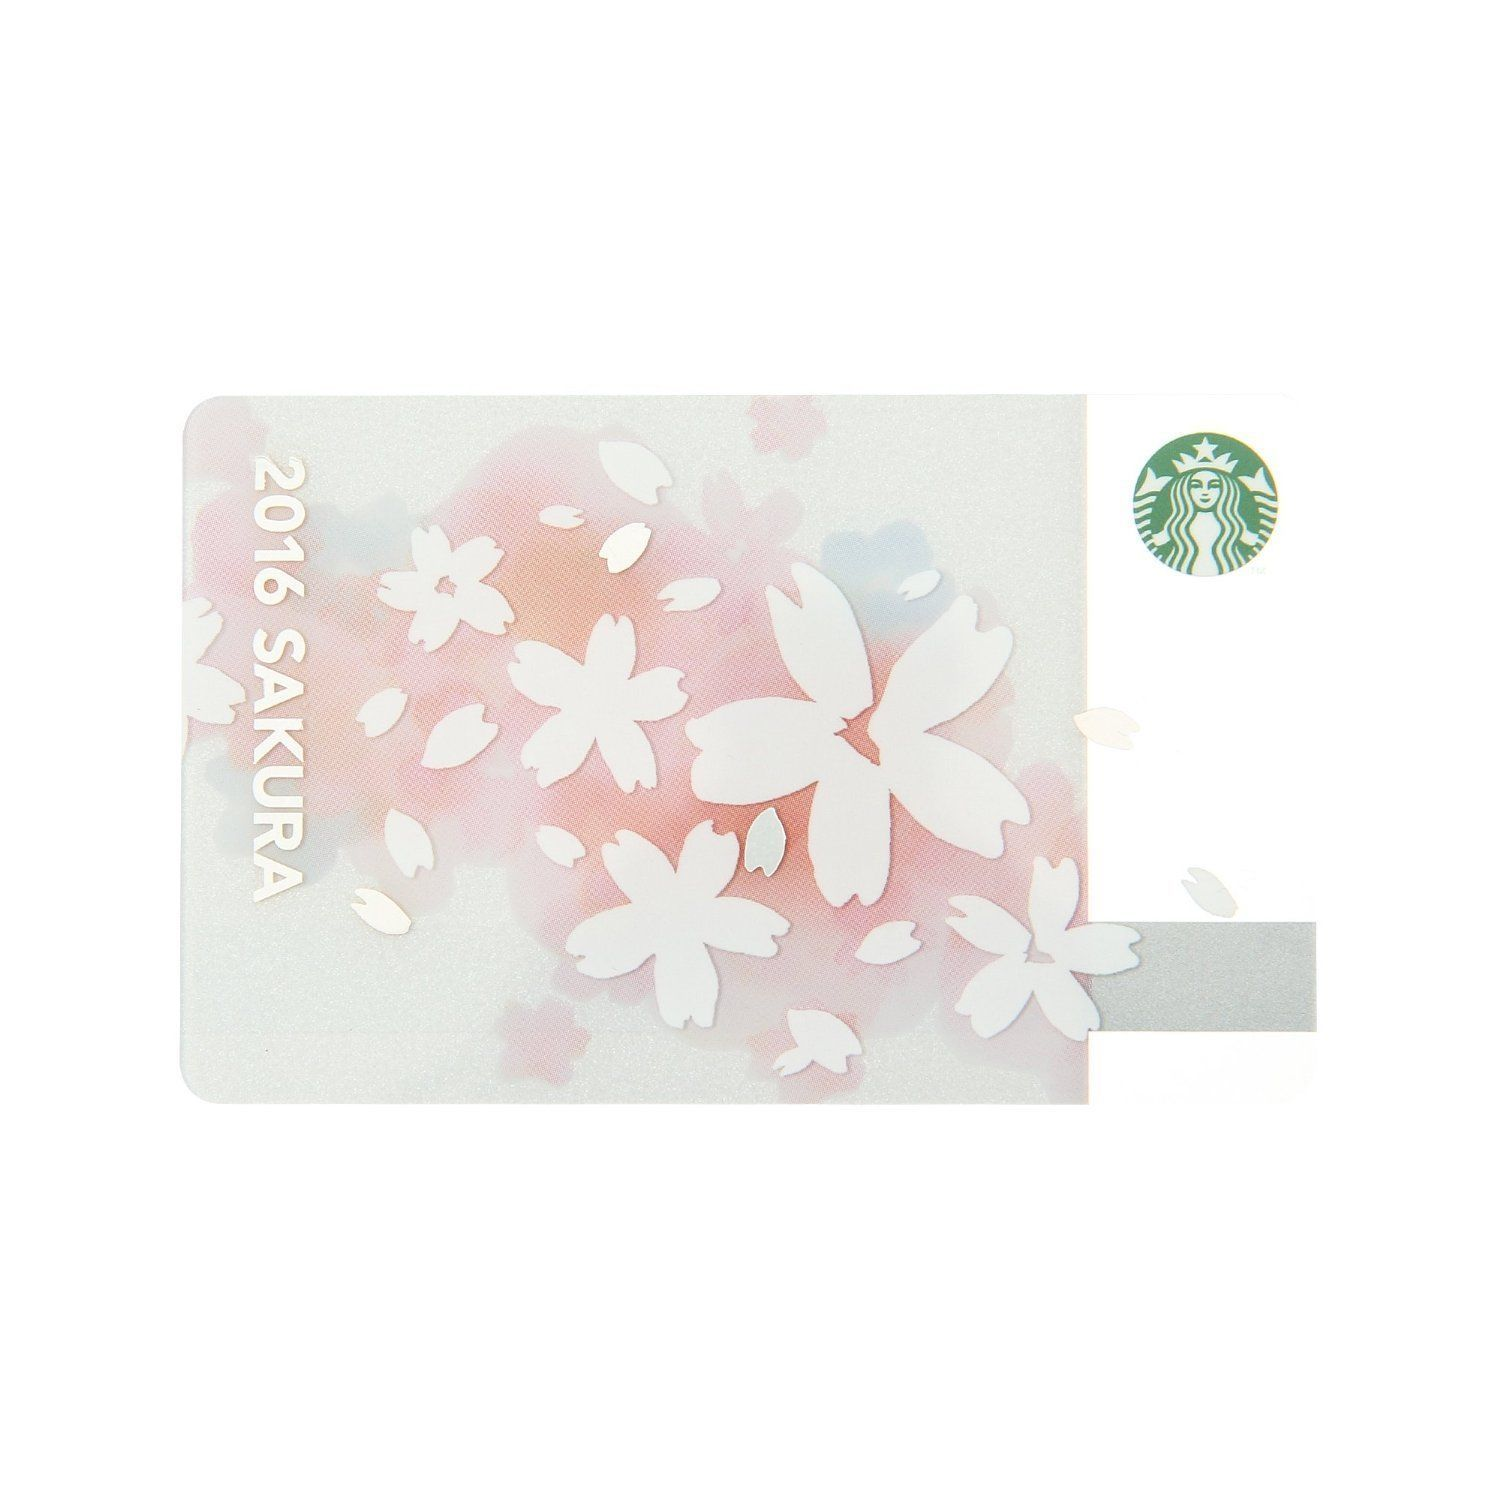 NEW! Starbucks Card 2016 Sakura from JAPAN F/S | Starbucks, Fika and ...